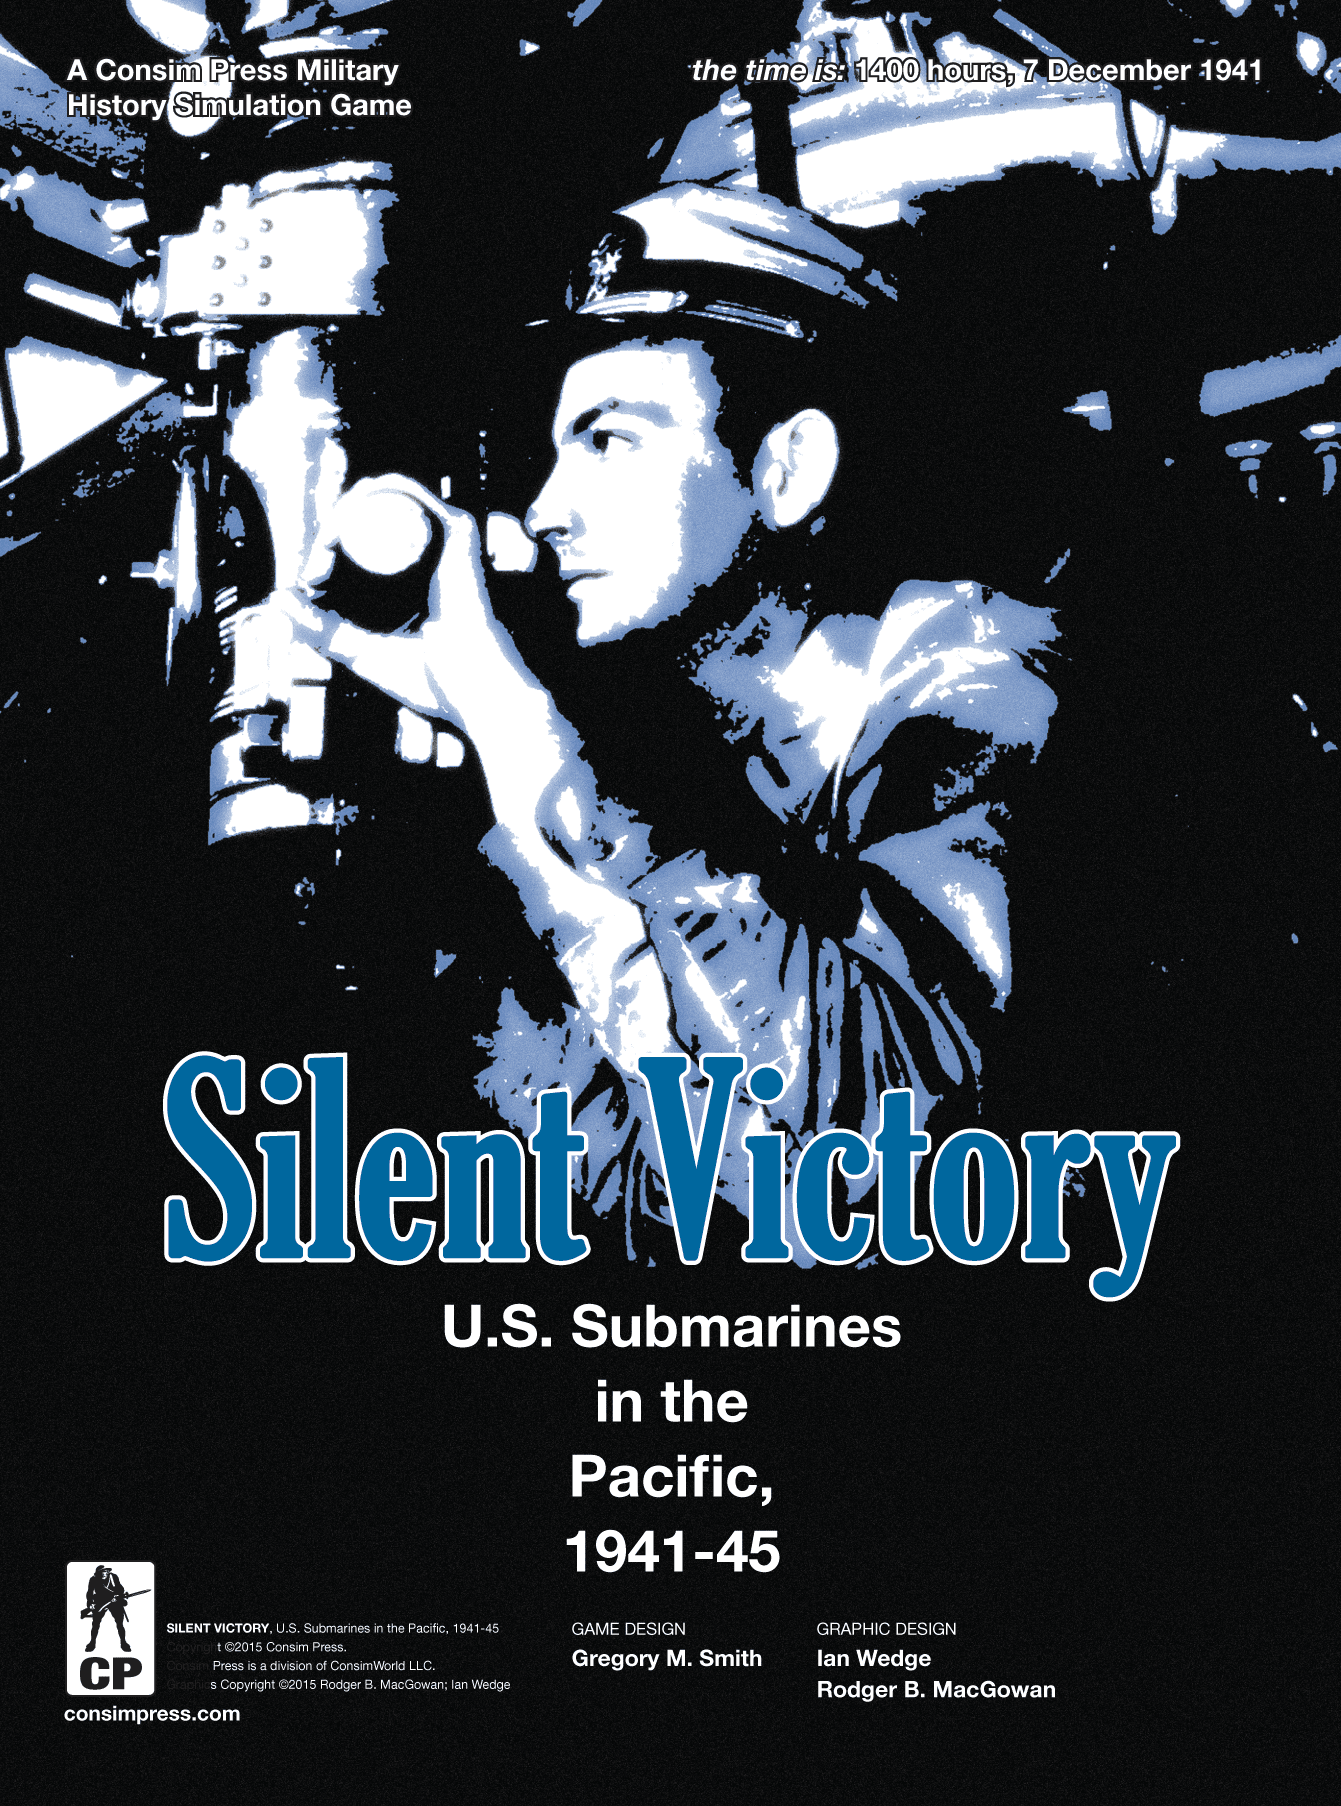 Main image for Silent Victory: U.S. Submarines in the Pacific, 1941-45